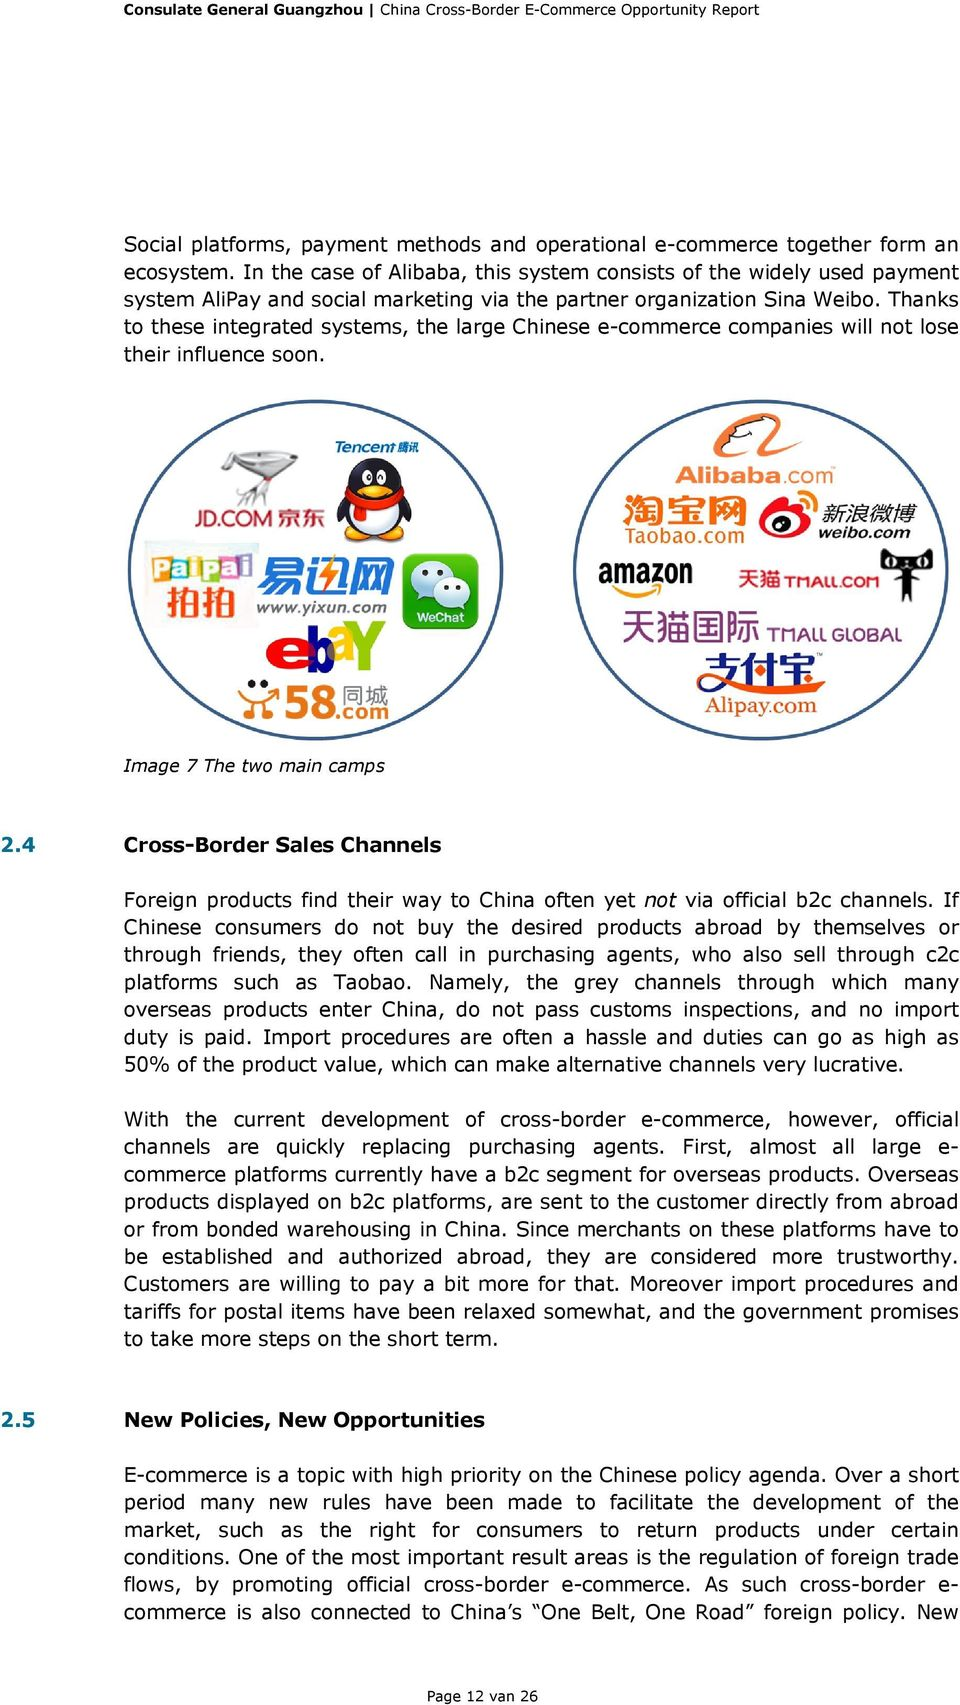 Thanks to these integrated systems, the large Chinese e-commerce companies will not lose their influence soon. Image 7 The two main camps 2.